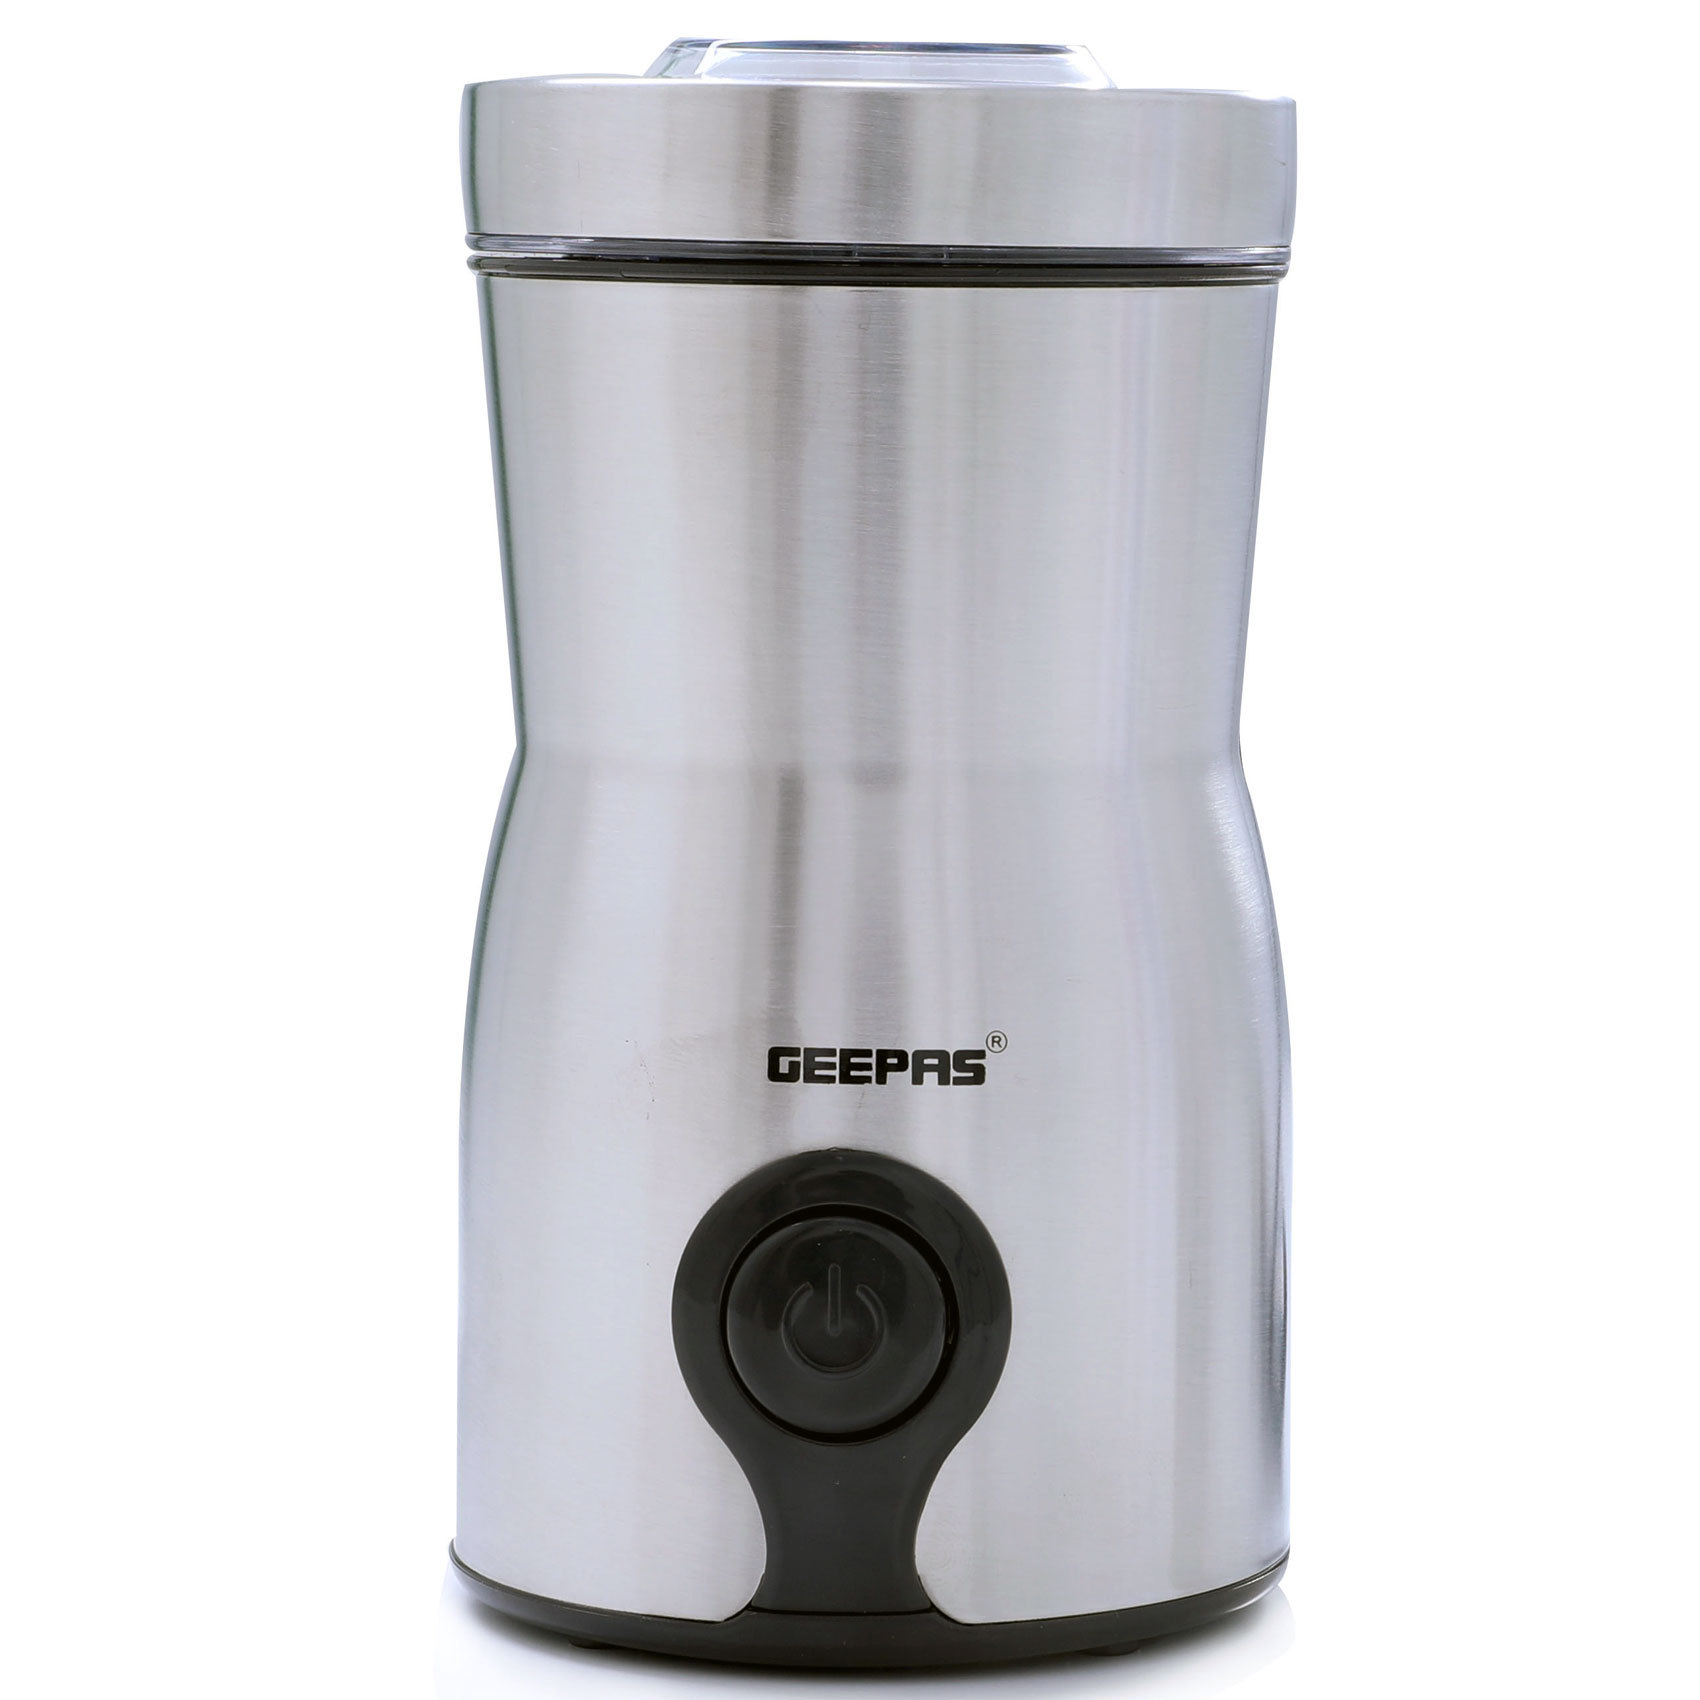 Buy Geepas Coffee Grinder GCG5471 Online in UAE - Carrefour UAE